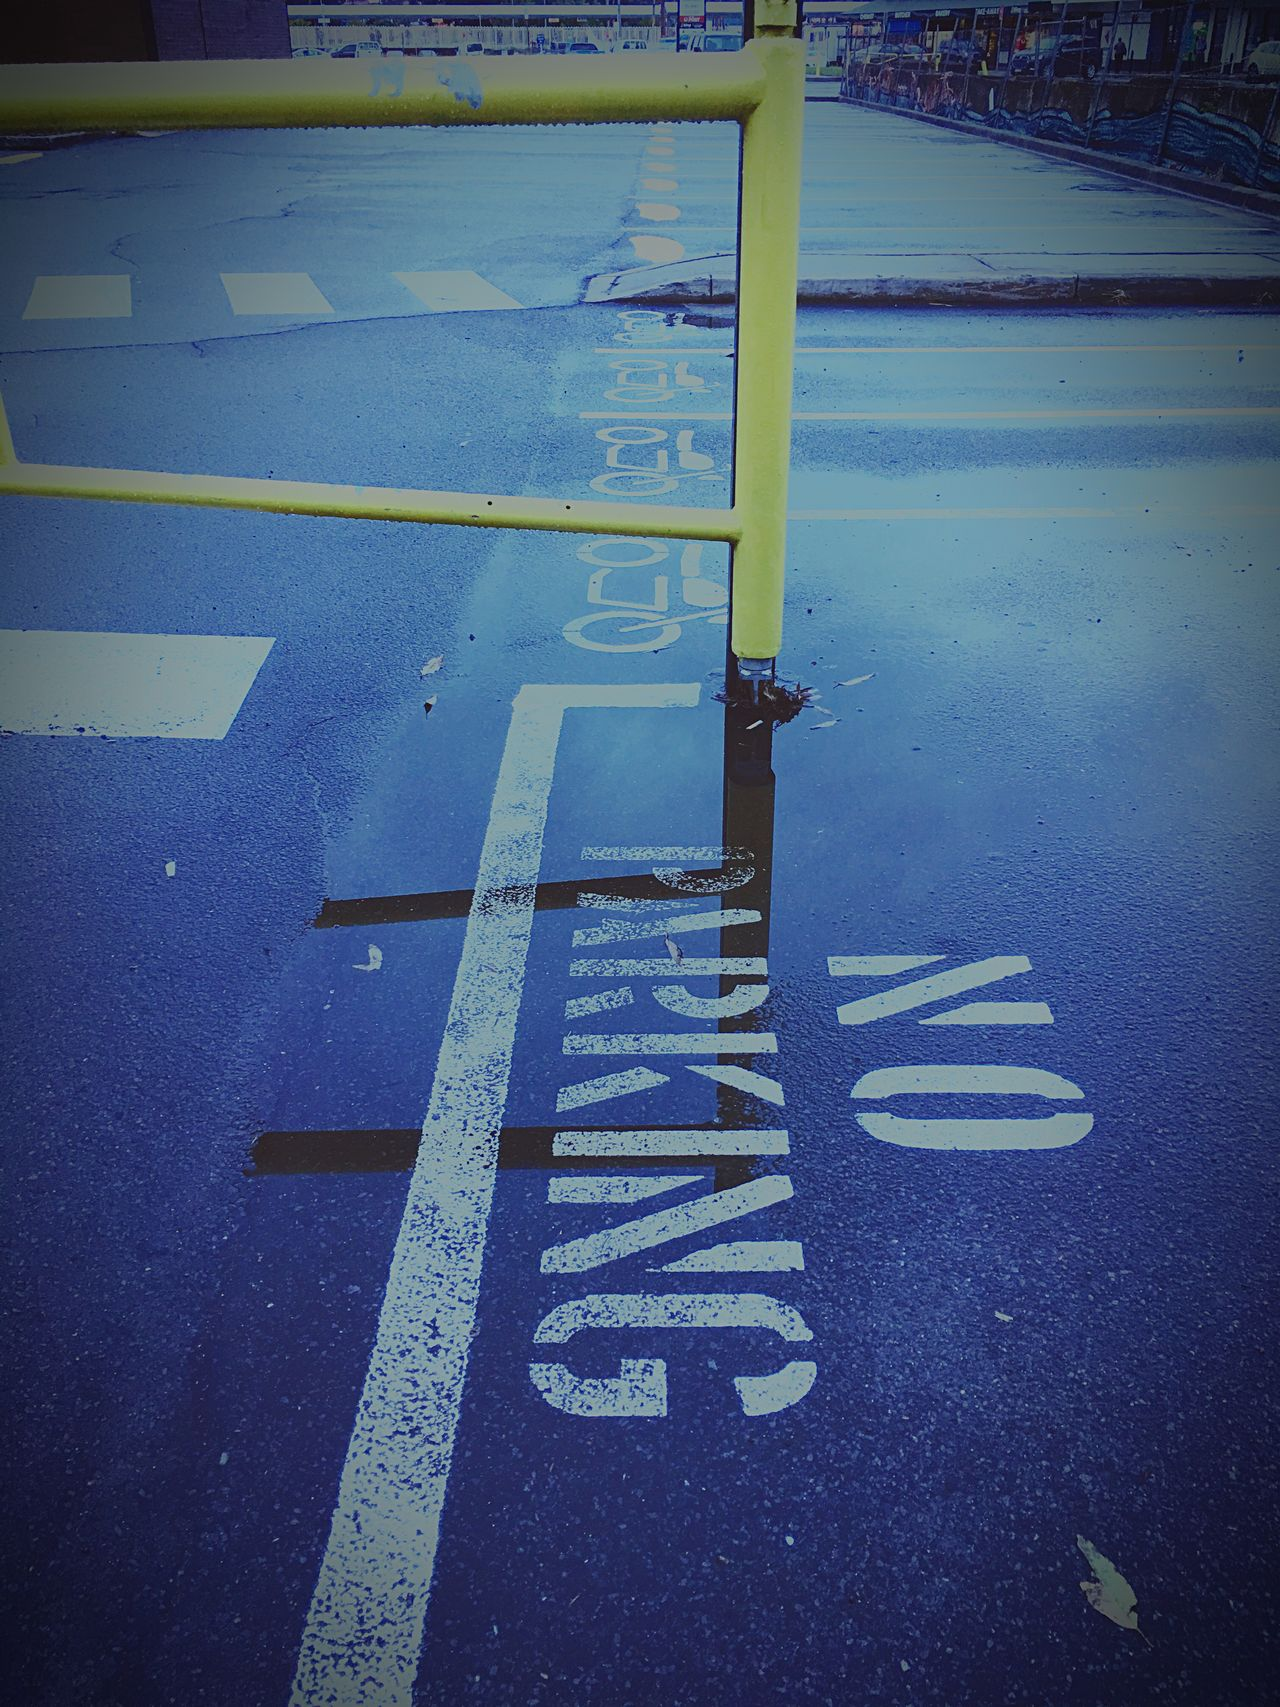 No Parking, not necessarily true 😉 Guidance Yellow Transportation No People Asphalt Outdoors No Parking Reflection Reflections Dcdeoliveira Iceintheattic